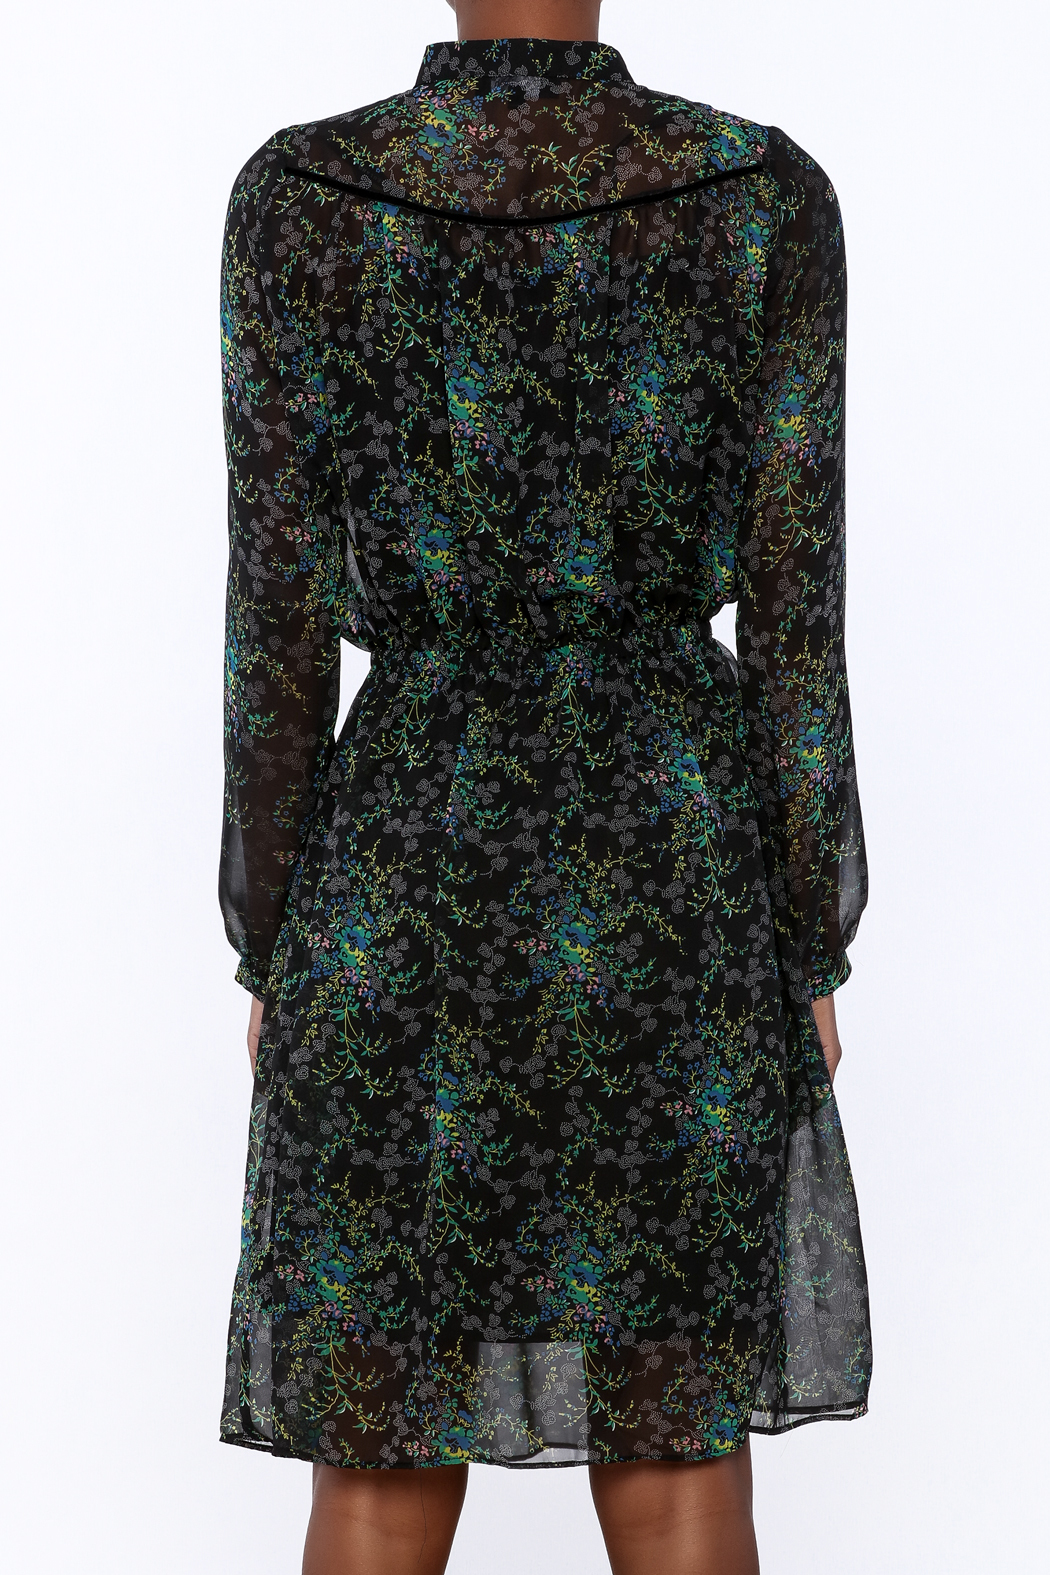 BEULAH STYLE Sheer Floral Dress - Back Cropped Image